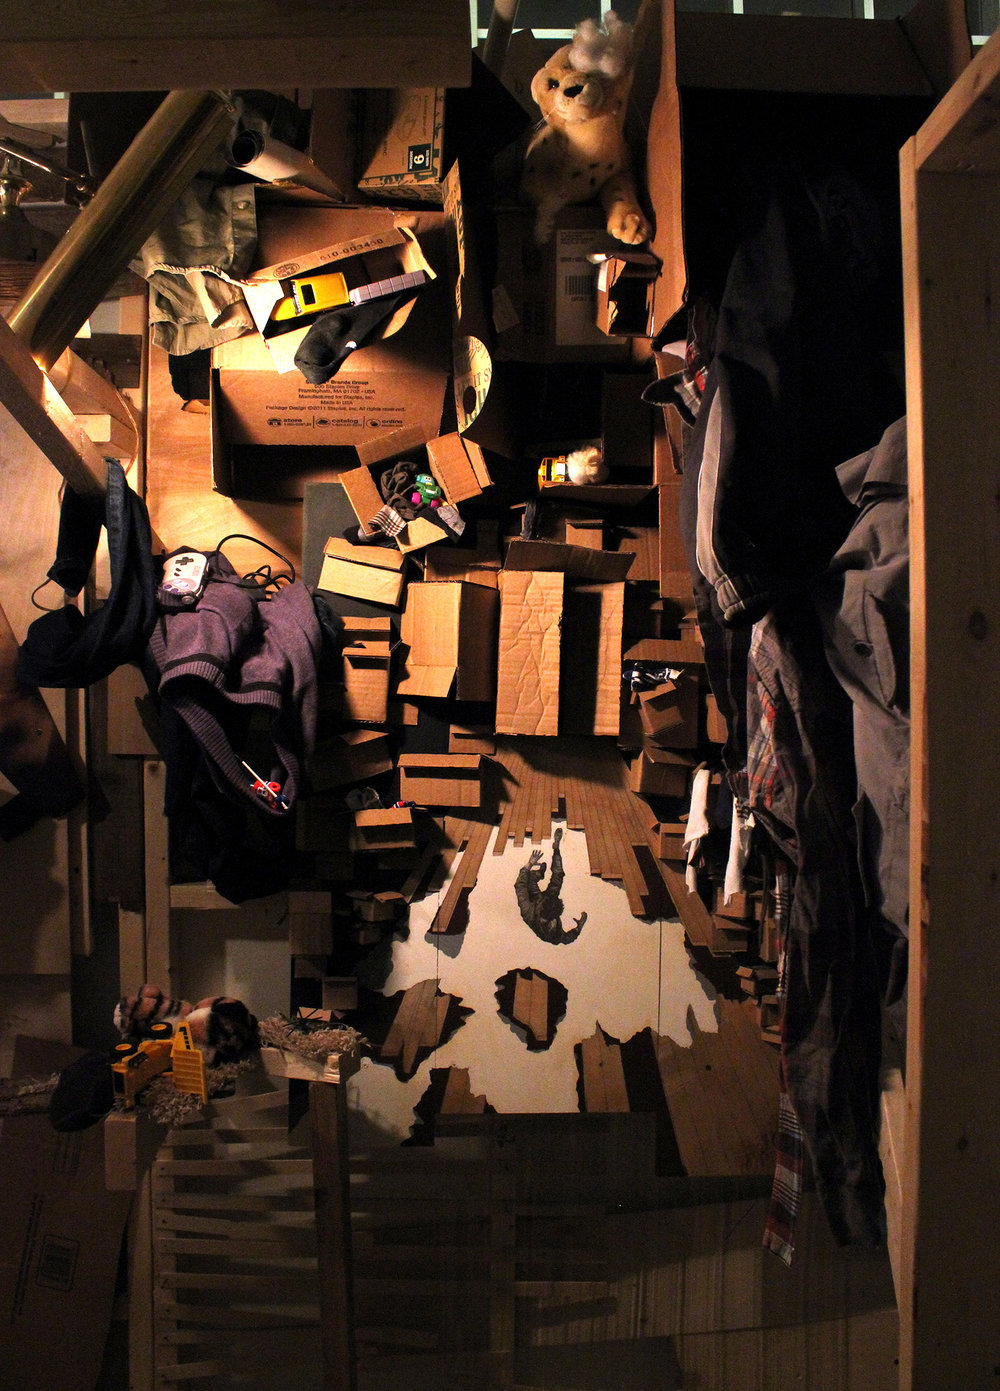 A merge of the hallway and attic. Storage of personal belongings of those lost is too much to bear. Falls through the hole in the hallway floor.